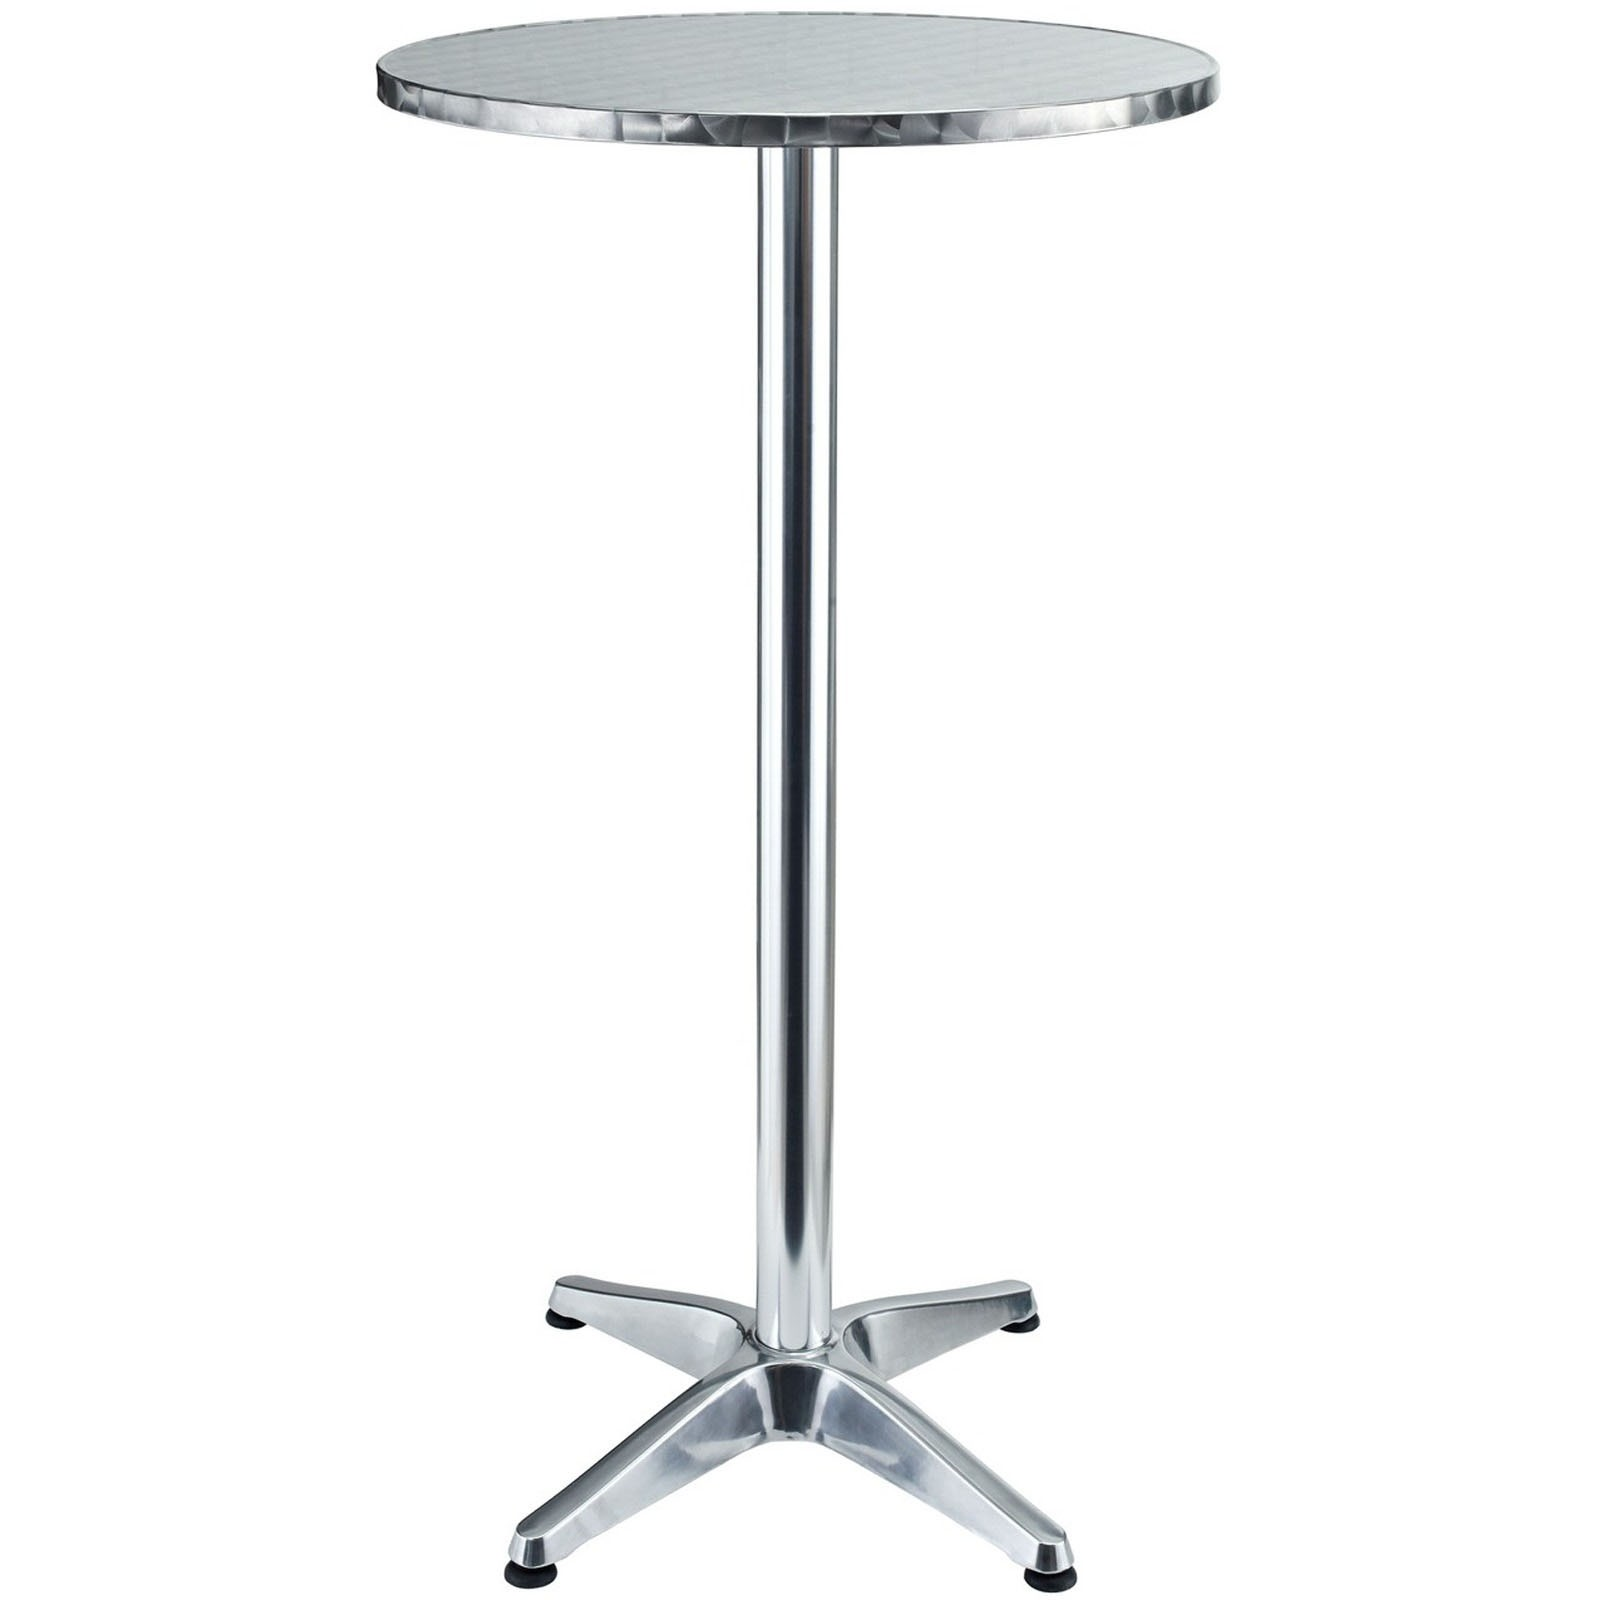 A Piece Of Tall Bar Table With Round Metal Tabletop And Base With Casters